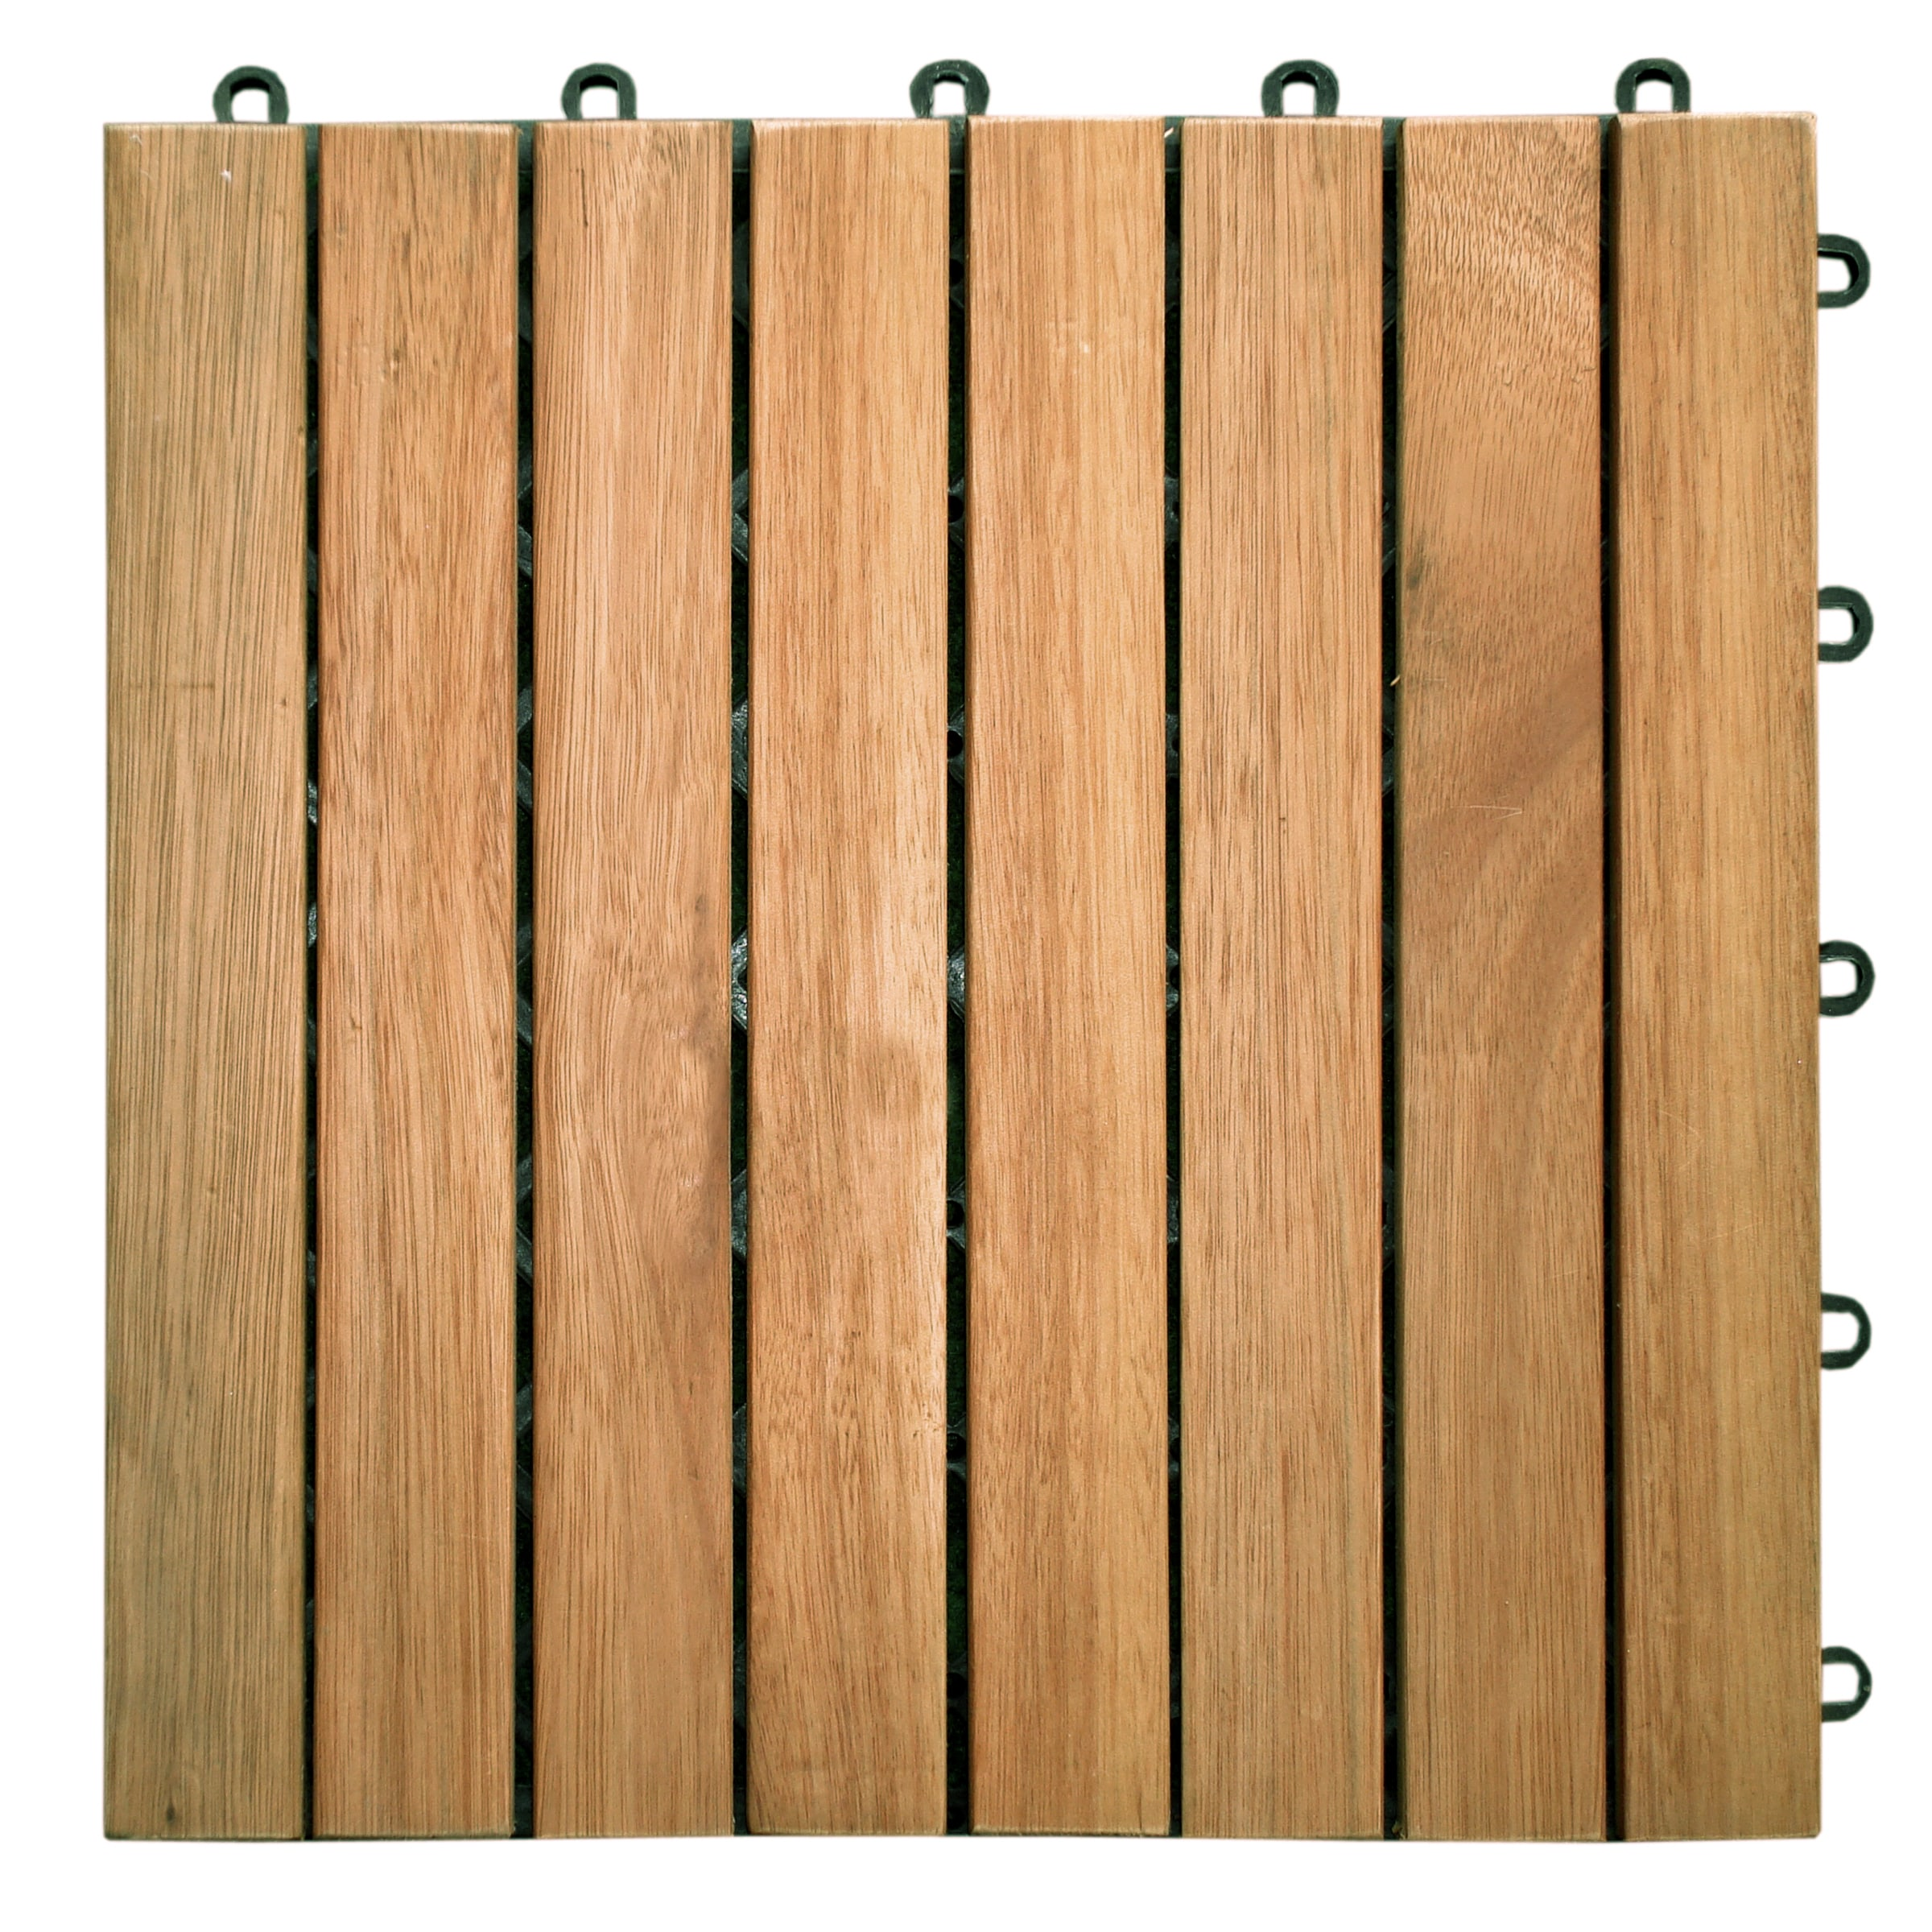 Interlocking Deck Tiles Vifah Premier Teak Finished Acacia 8 Slat Interlocking Deck Tiles Set Of 10